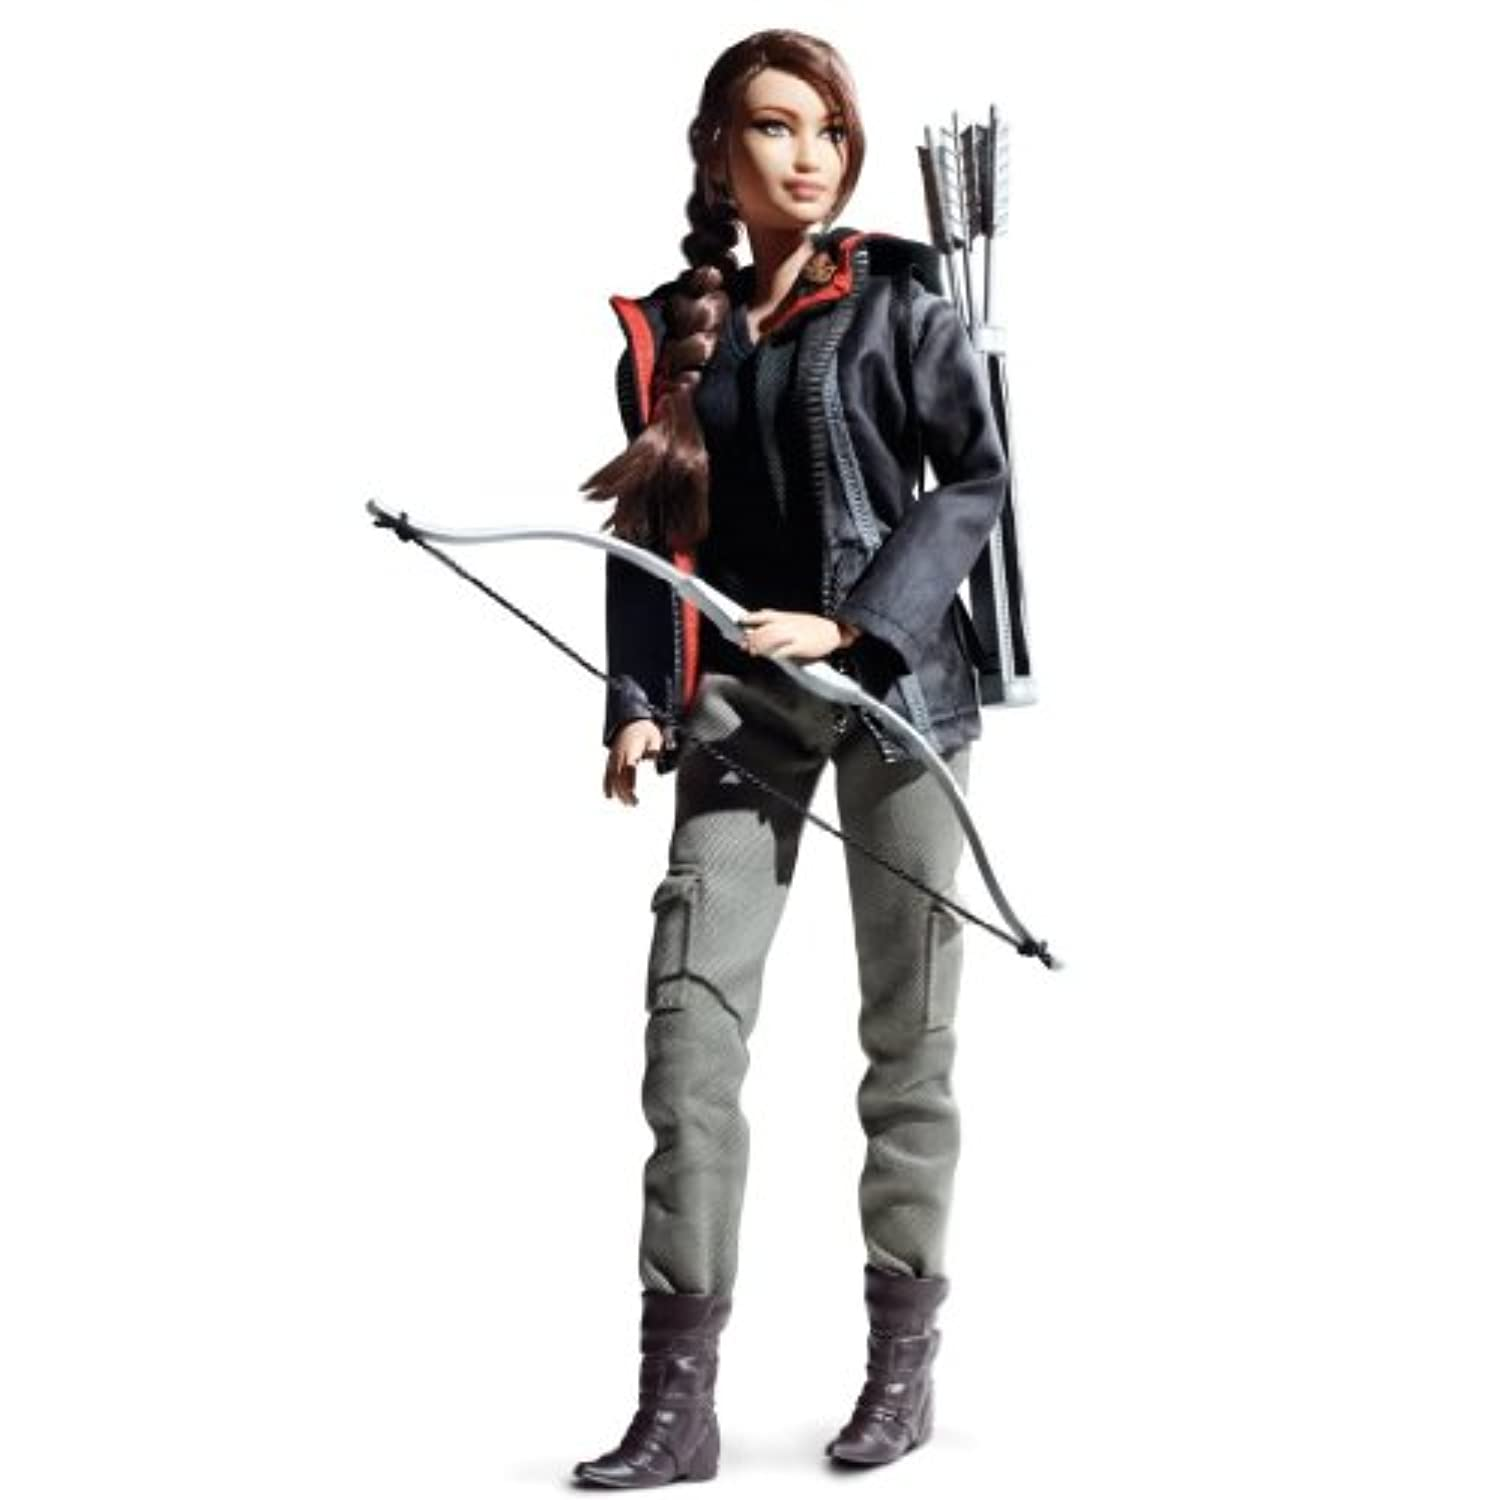 Toy / Game Barbie Collector Hunger Games Katniss Everdeen Doll W/ A Hooded Jacket, Top & Military-Style Pants by 4KIDS